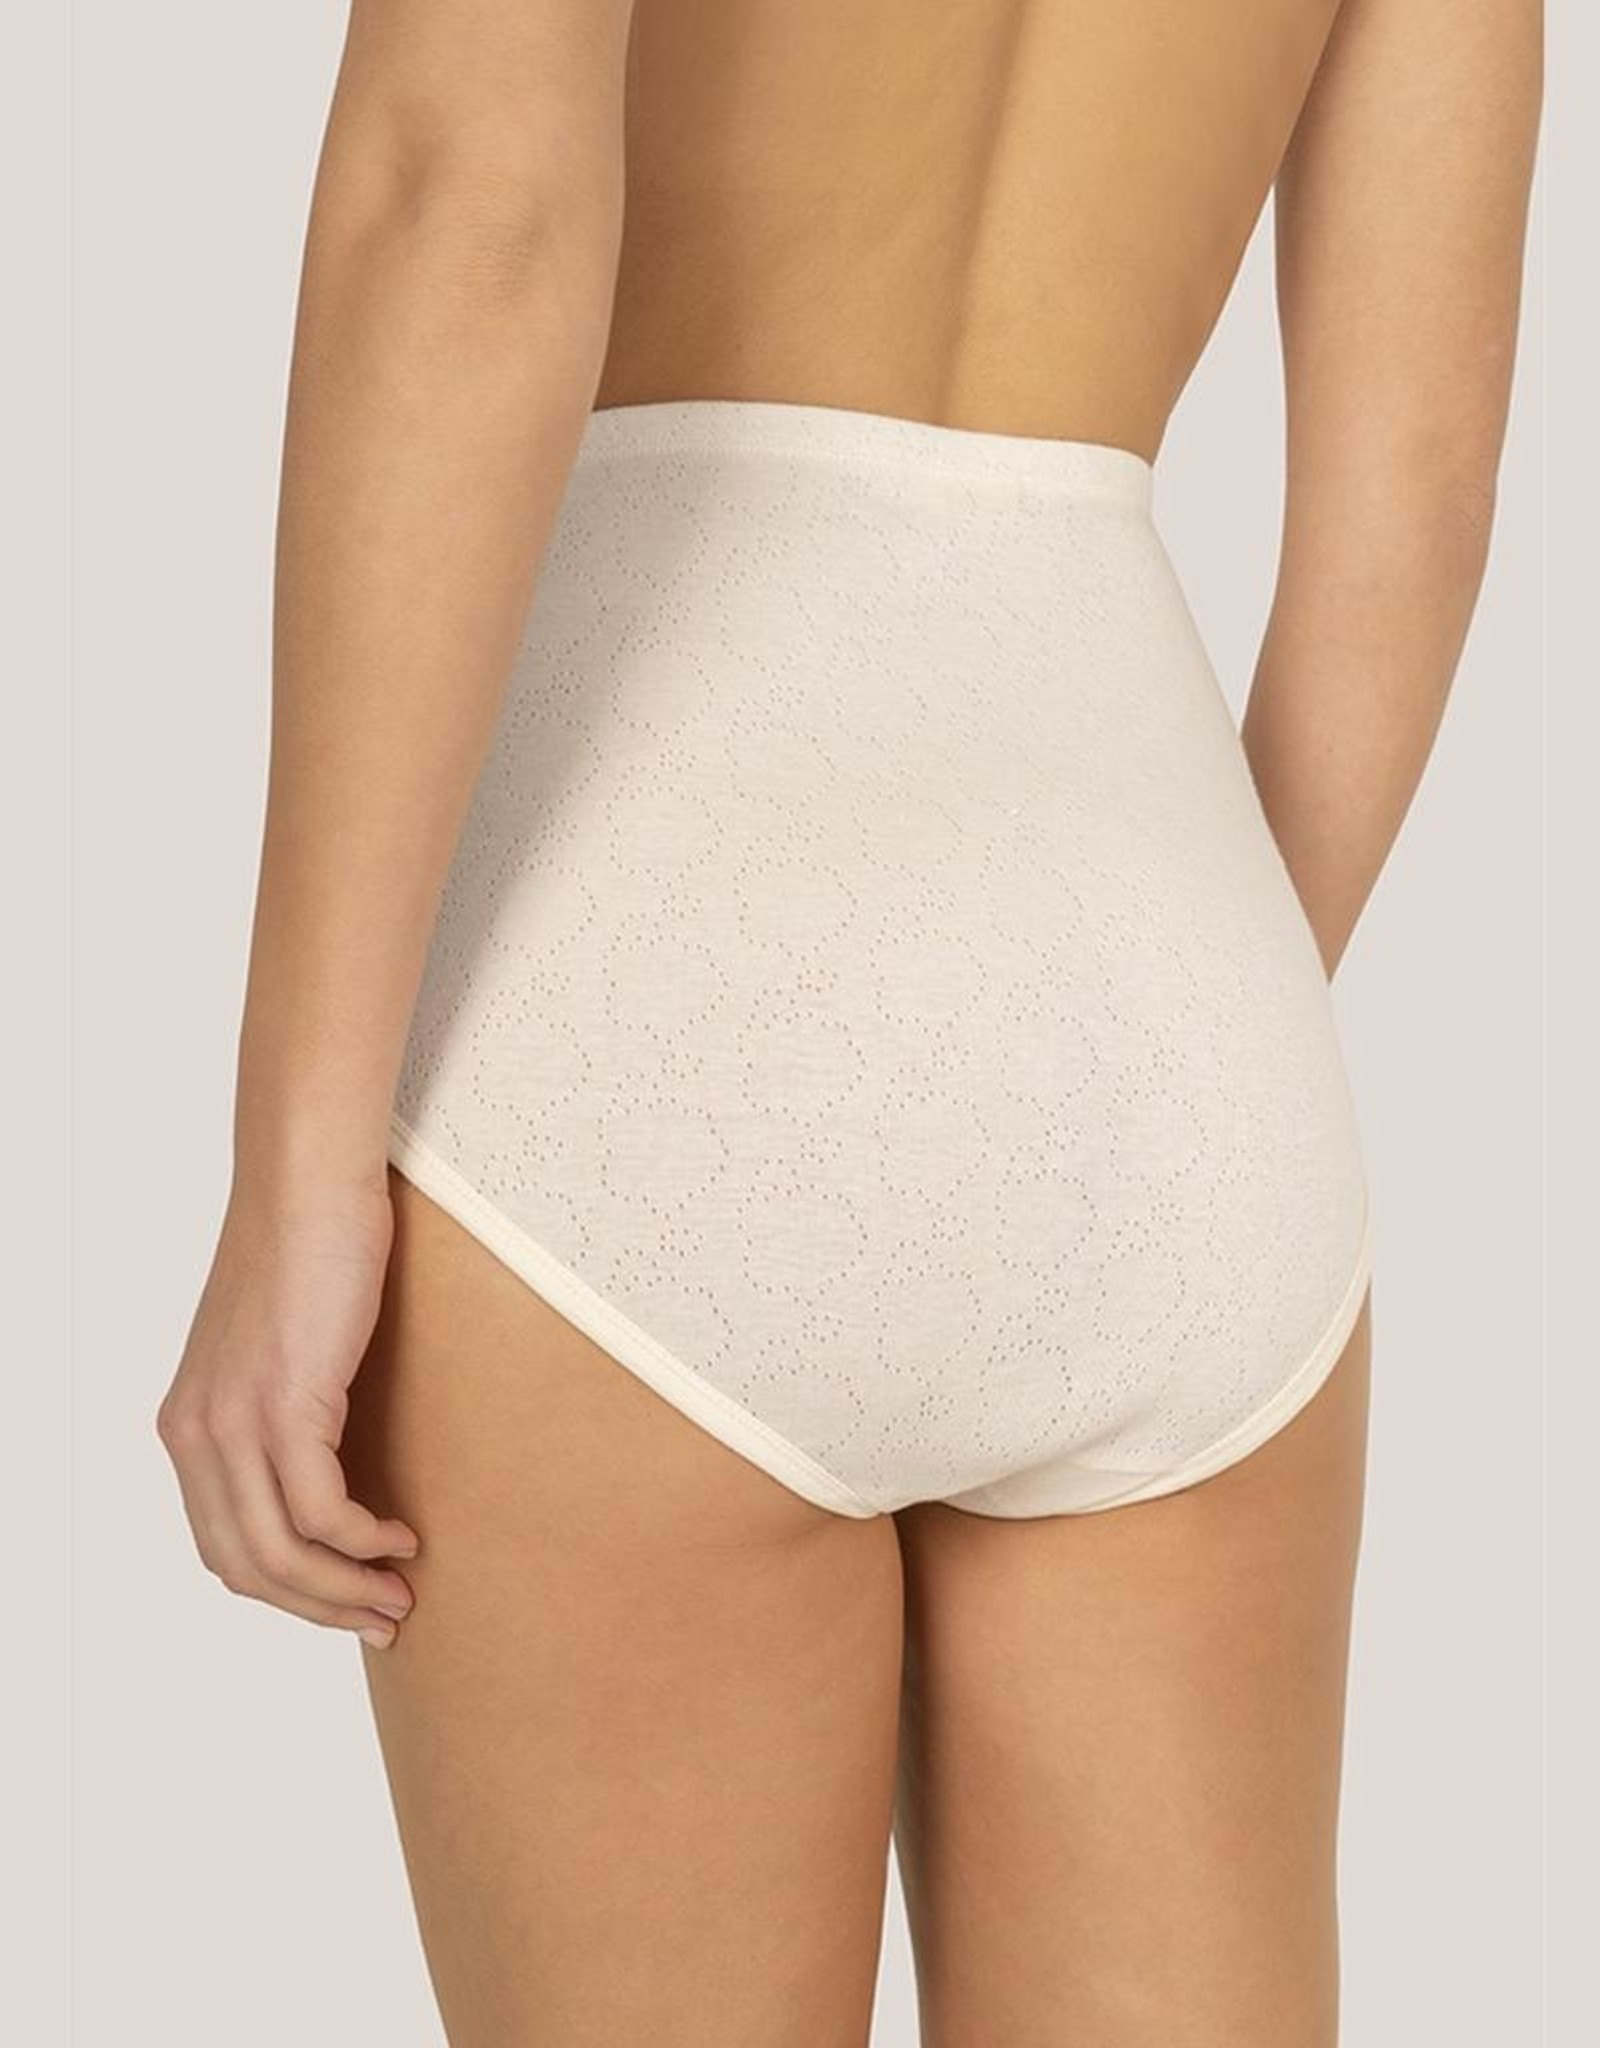 Extra high brief made with openwork fabric